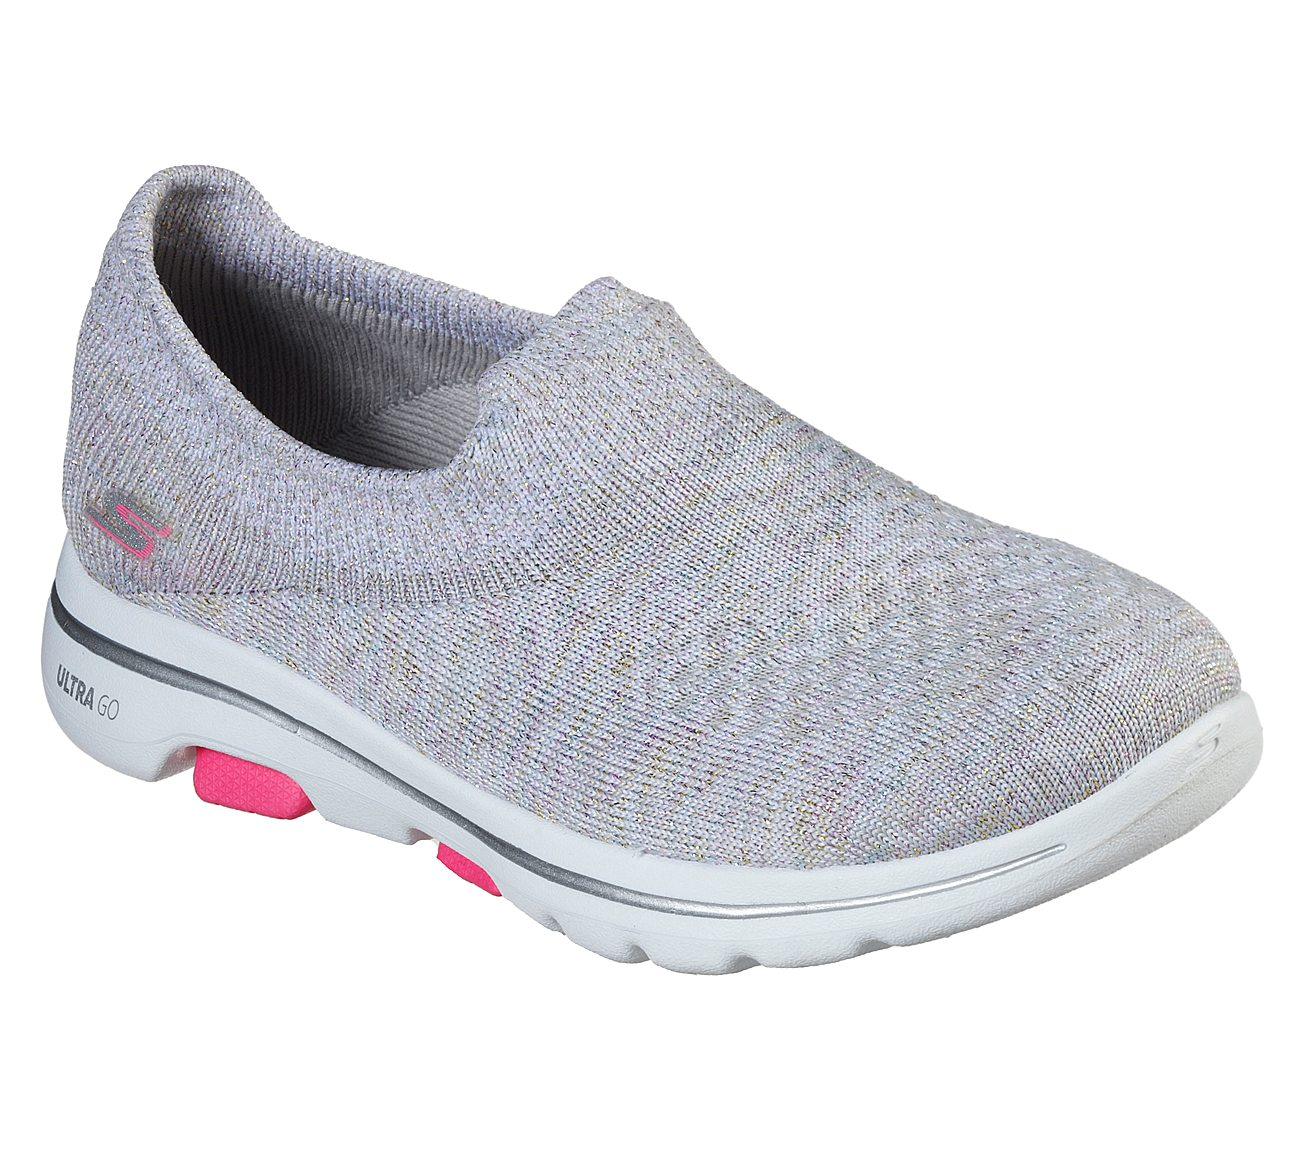 Skechers GoWalk 5 Women's Walking Shoes